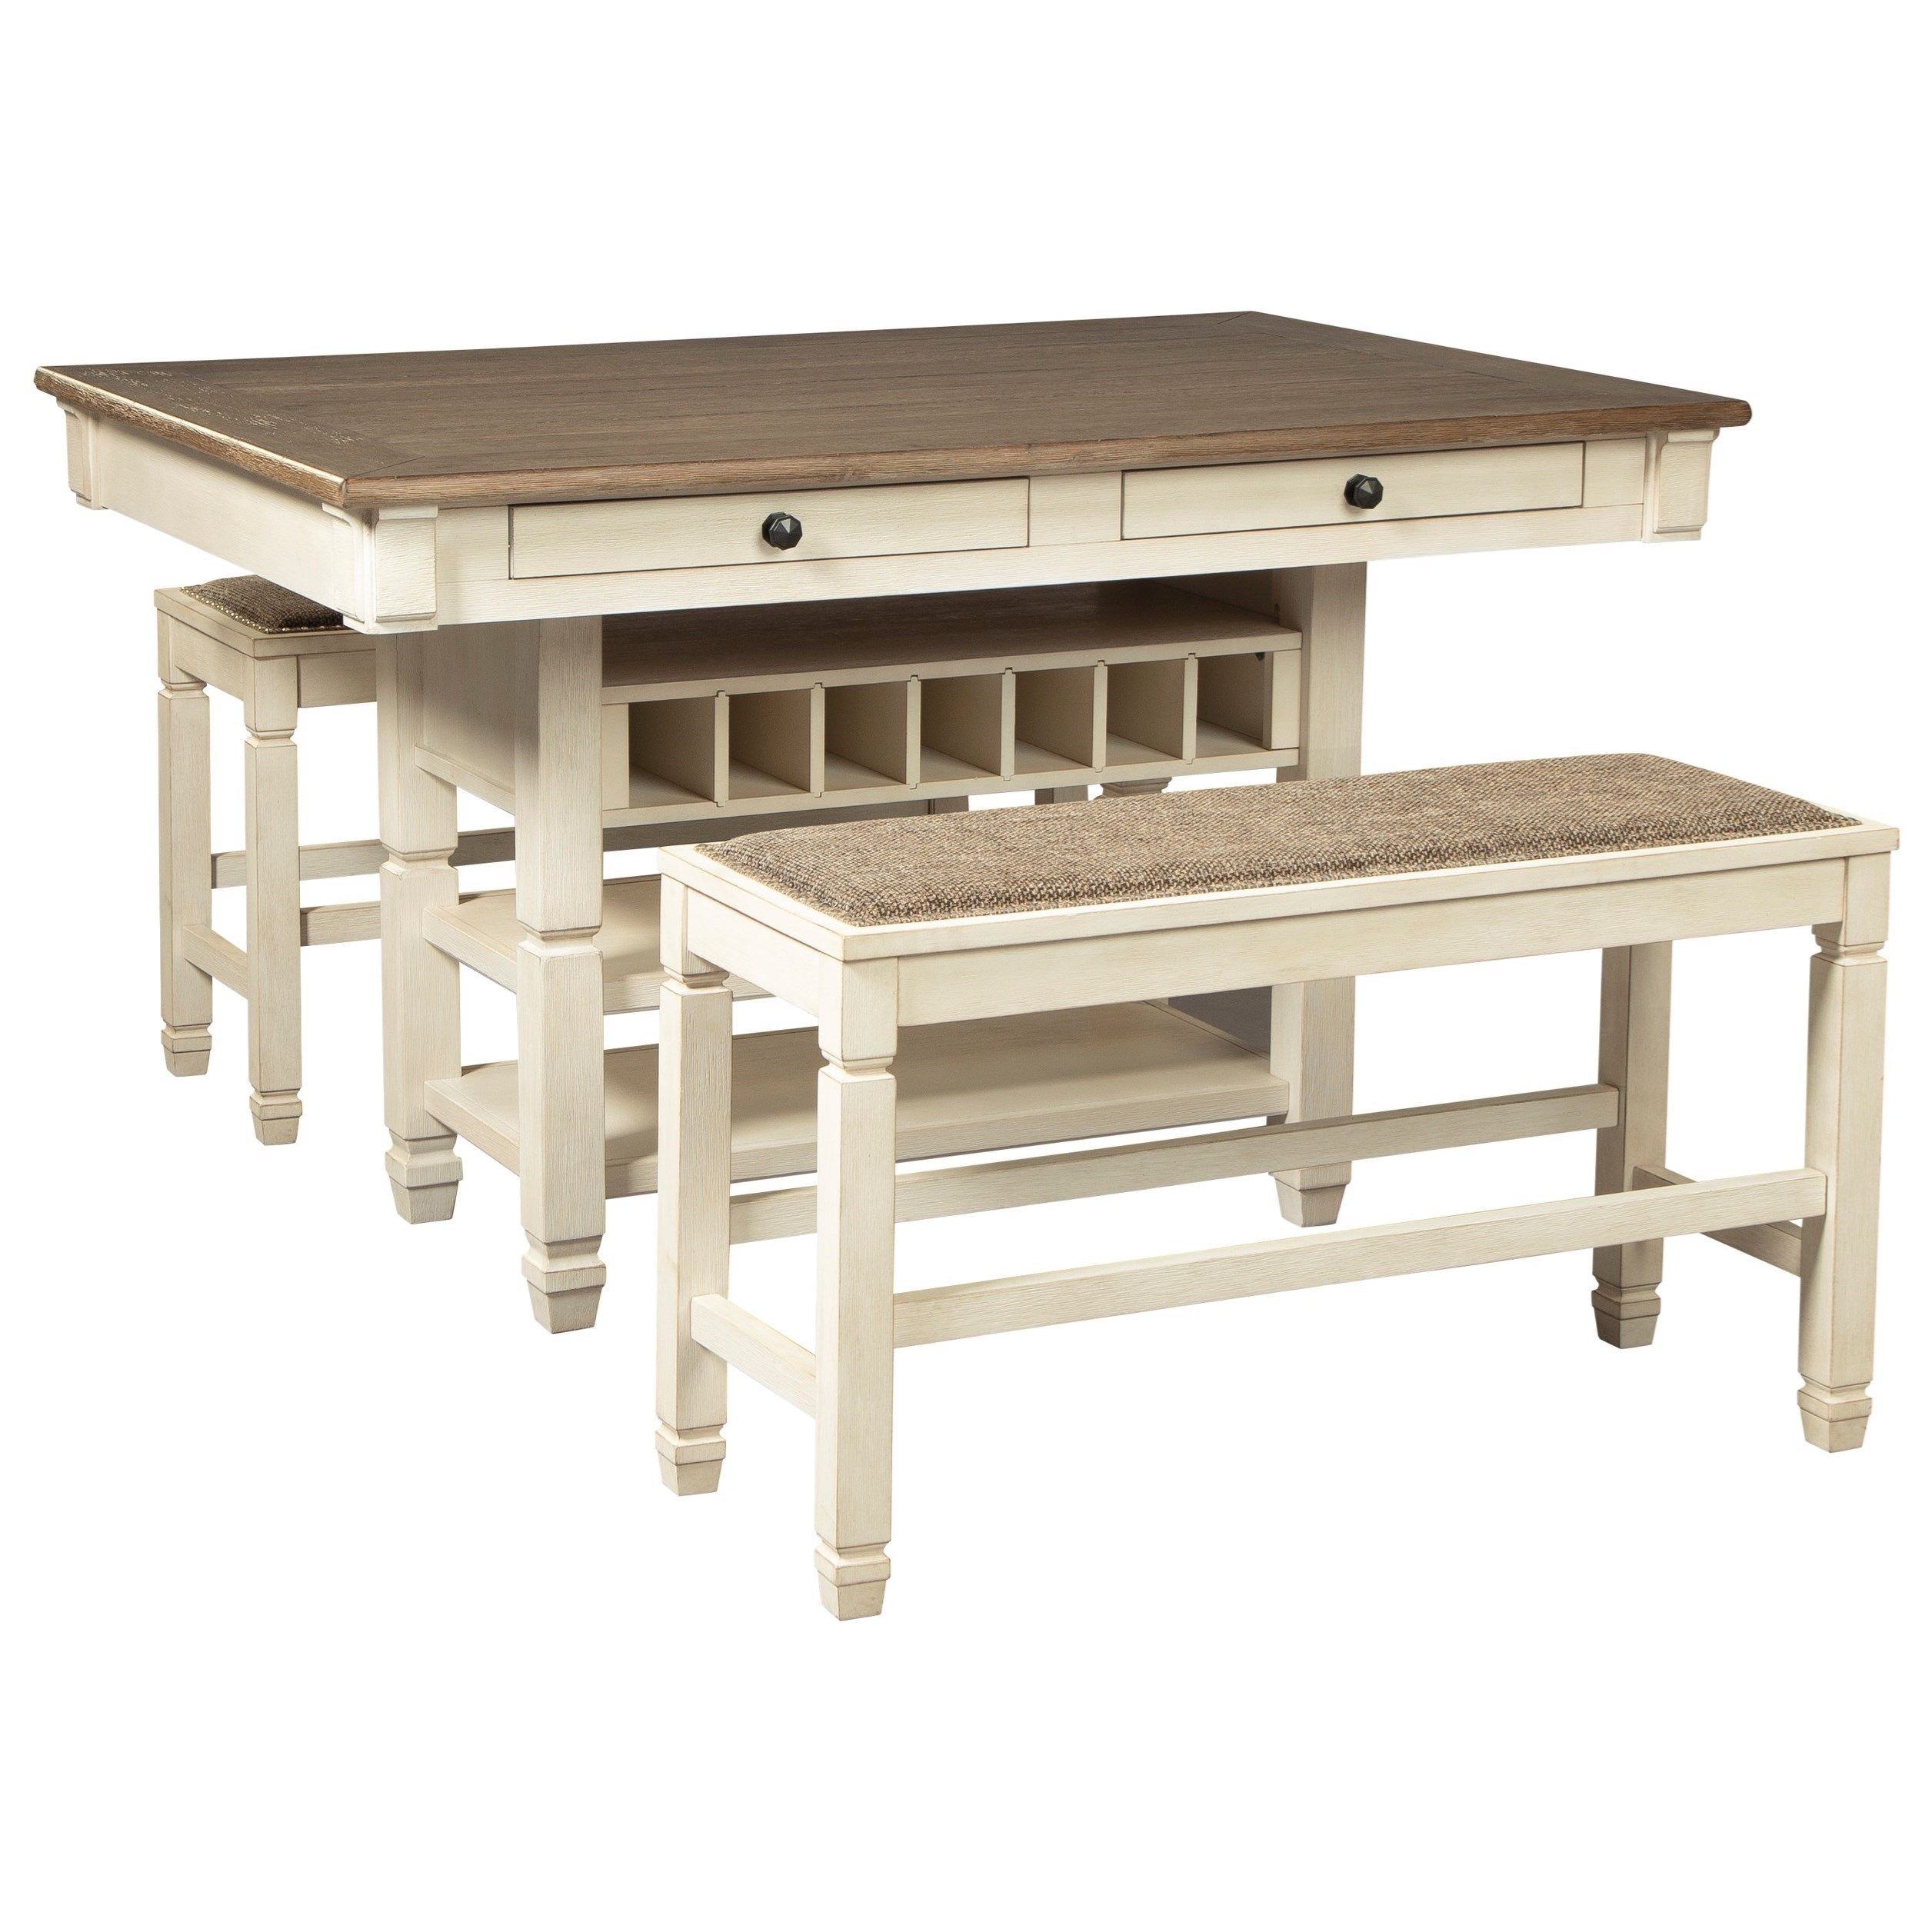 Bolanburg 3-Piece Counter Table and Bench Set by Signature Design by Ashley at Standard Furniture